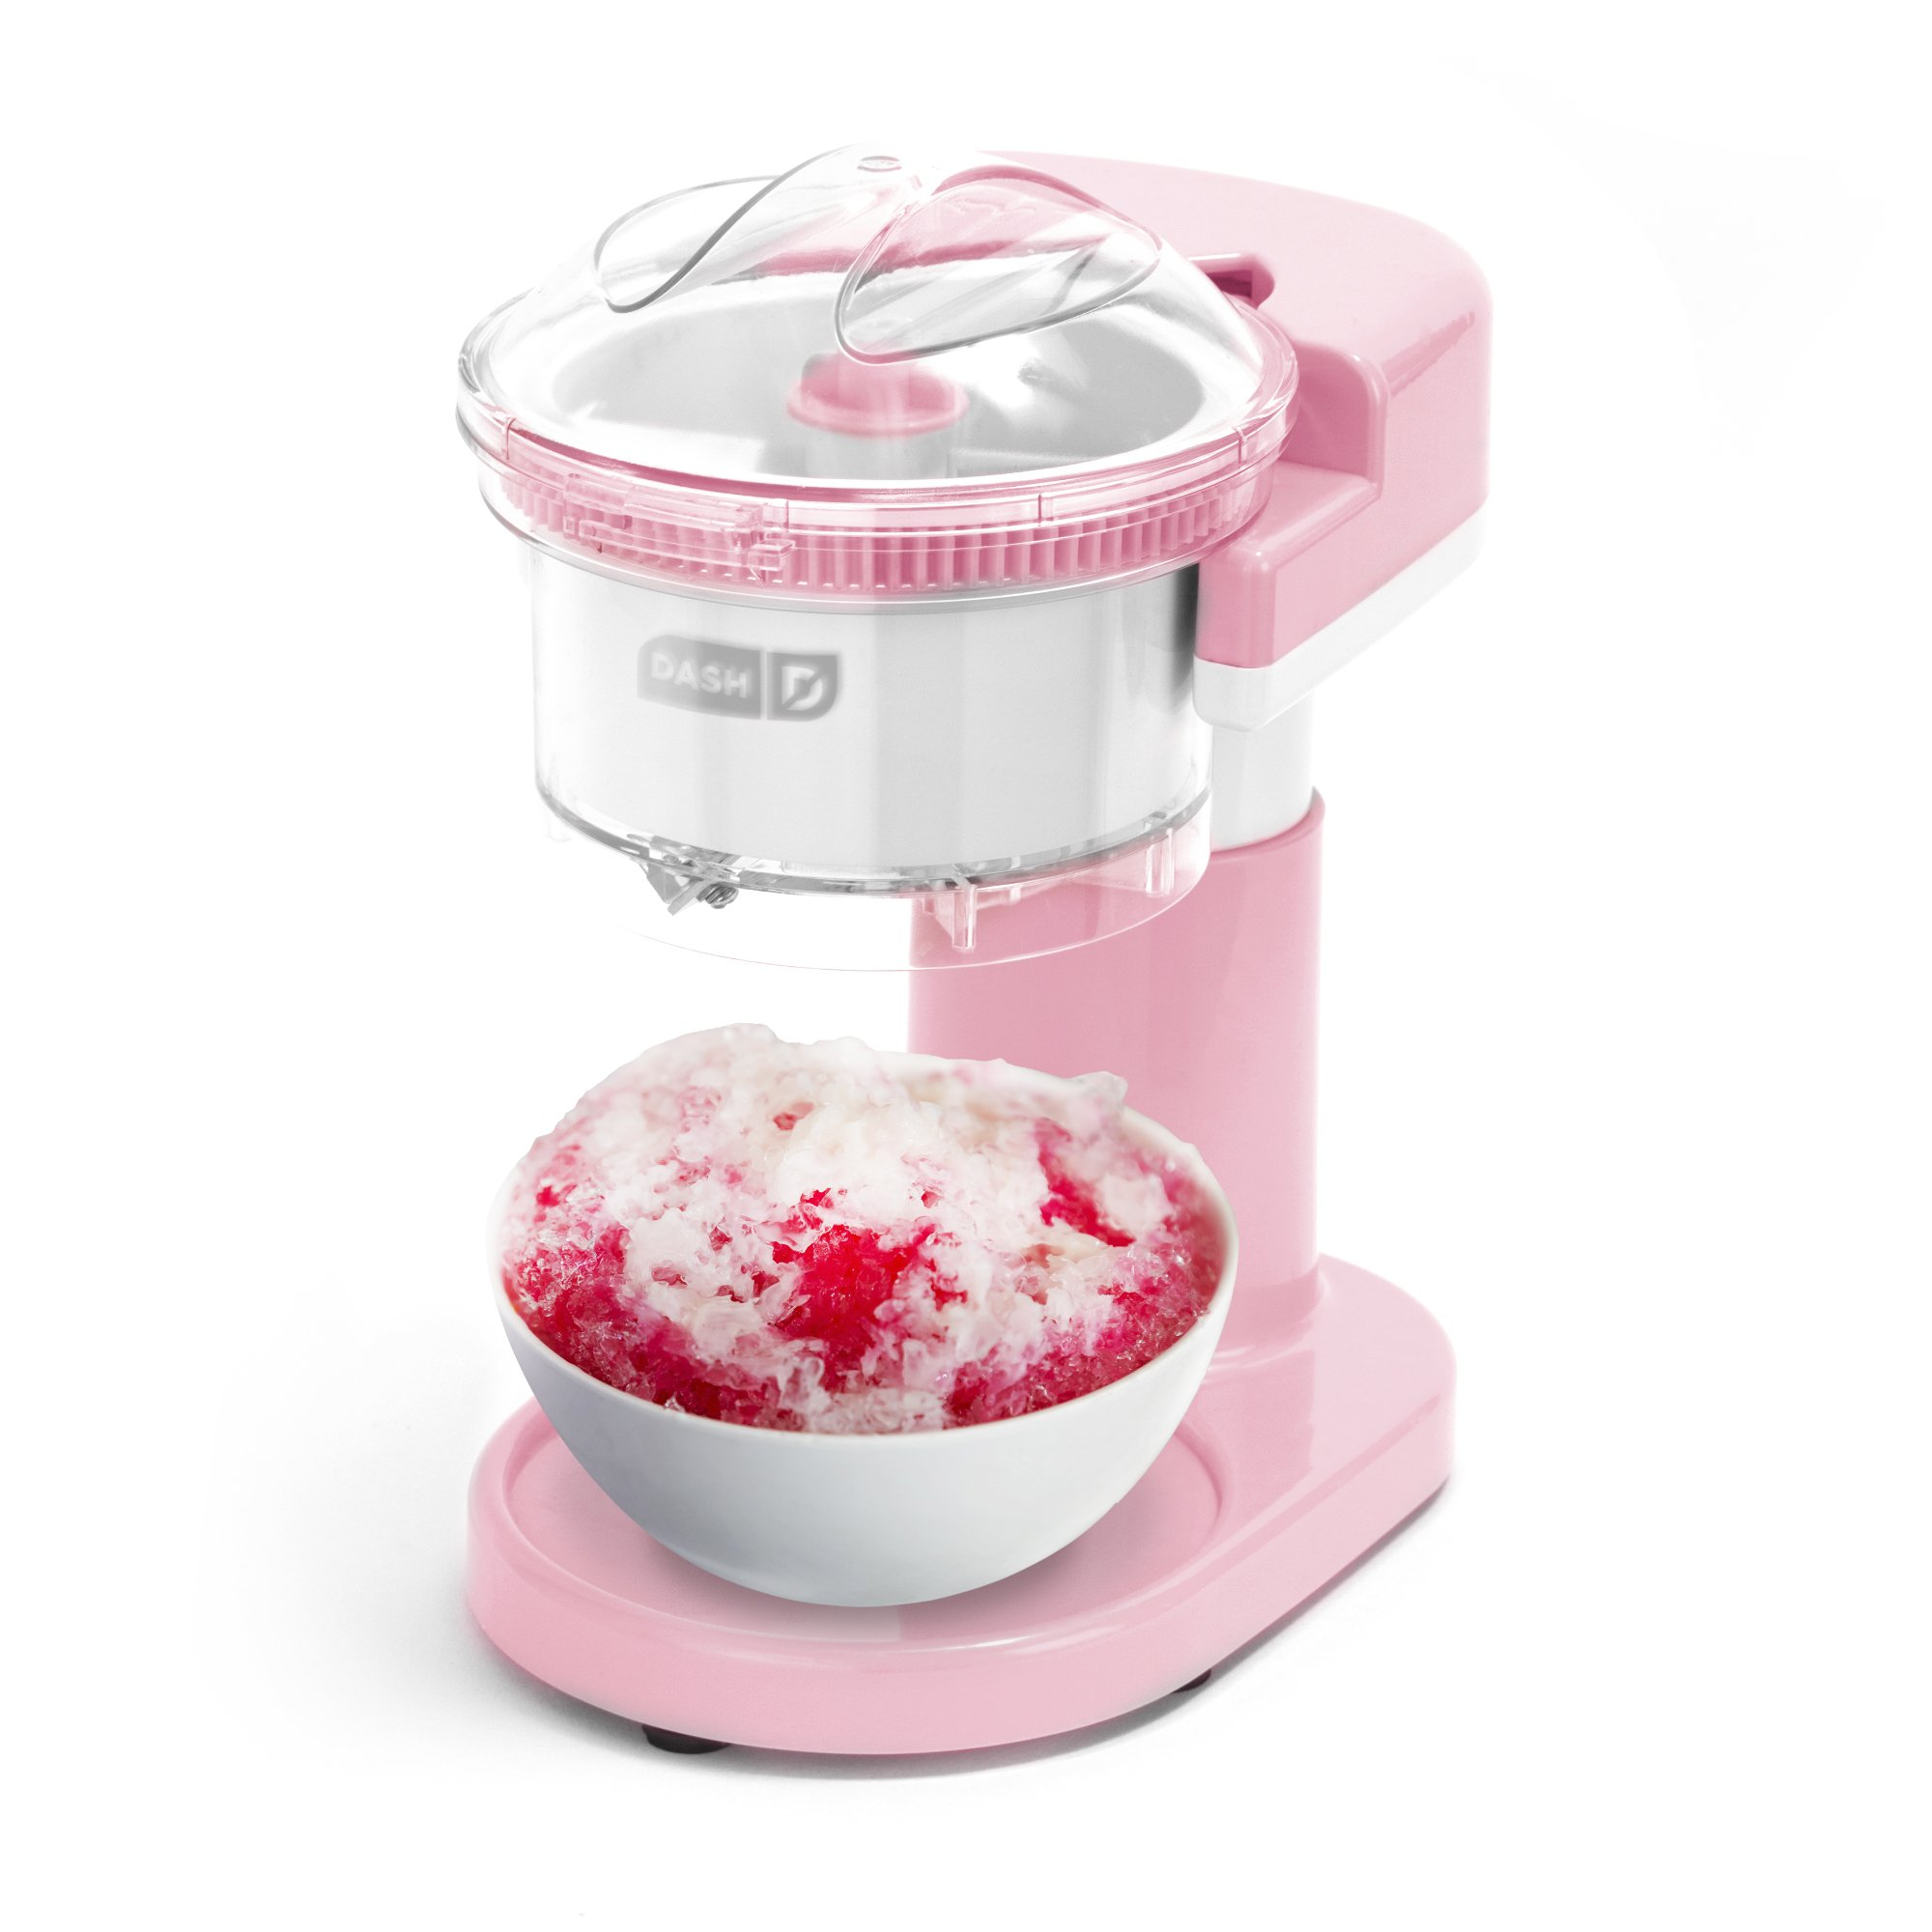 DASH DSIM100GBPK02 Shaved Ice Maker Perfectly Snow Cones in Minutes Regular Sized Cubes, Easy to Use, Pink